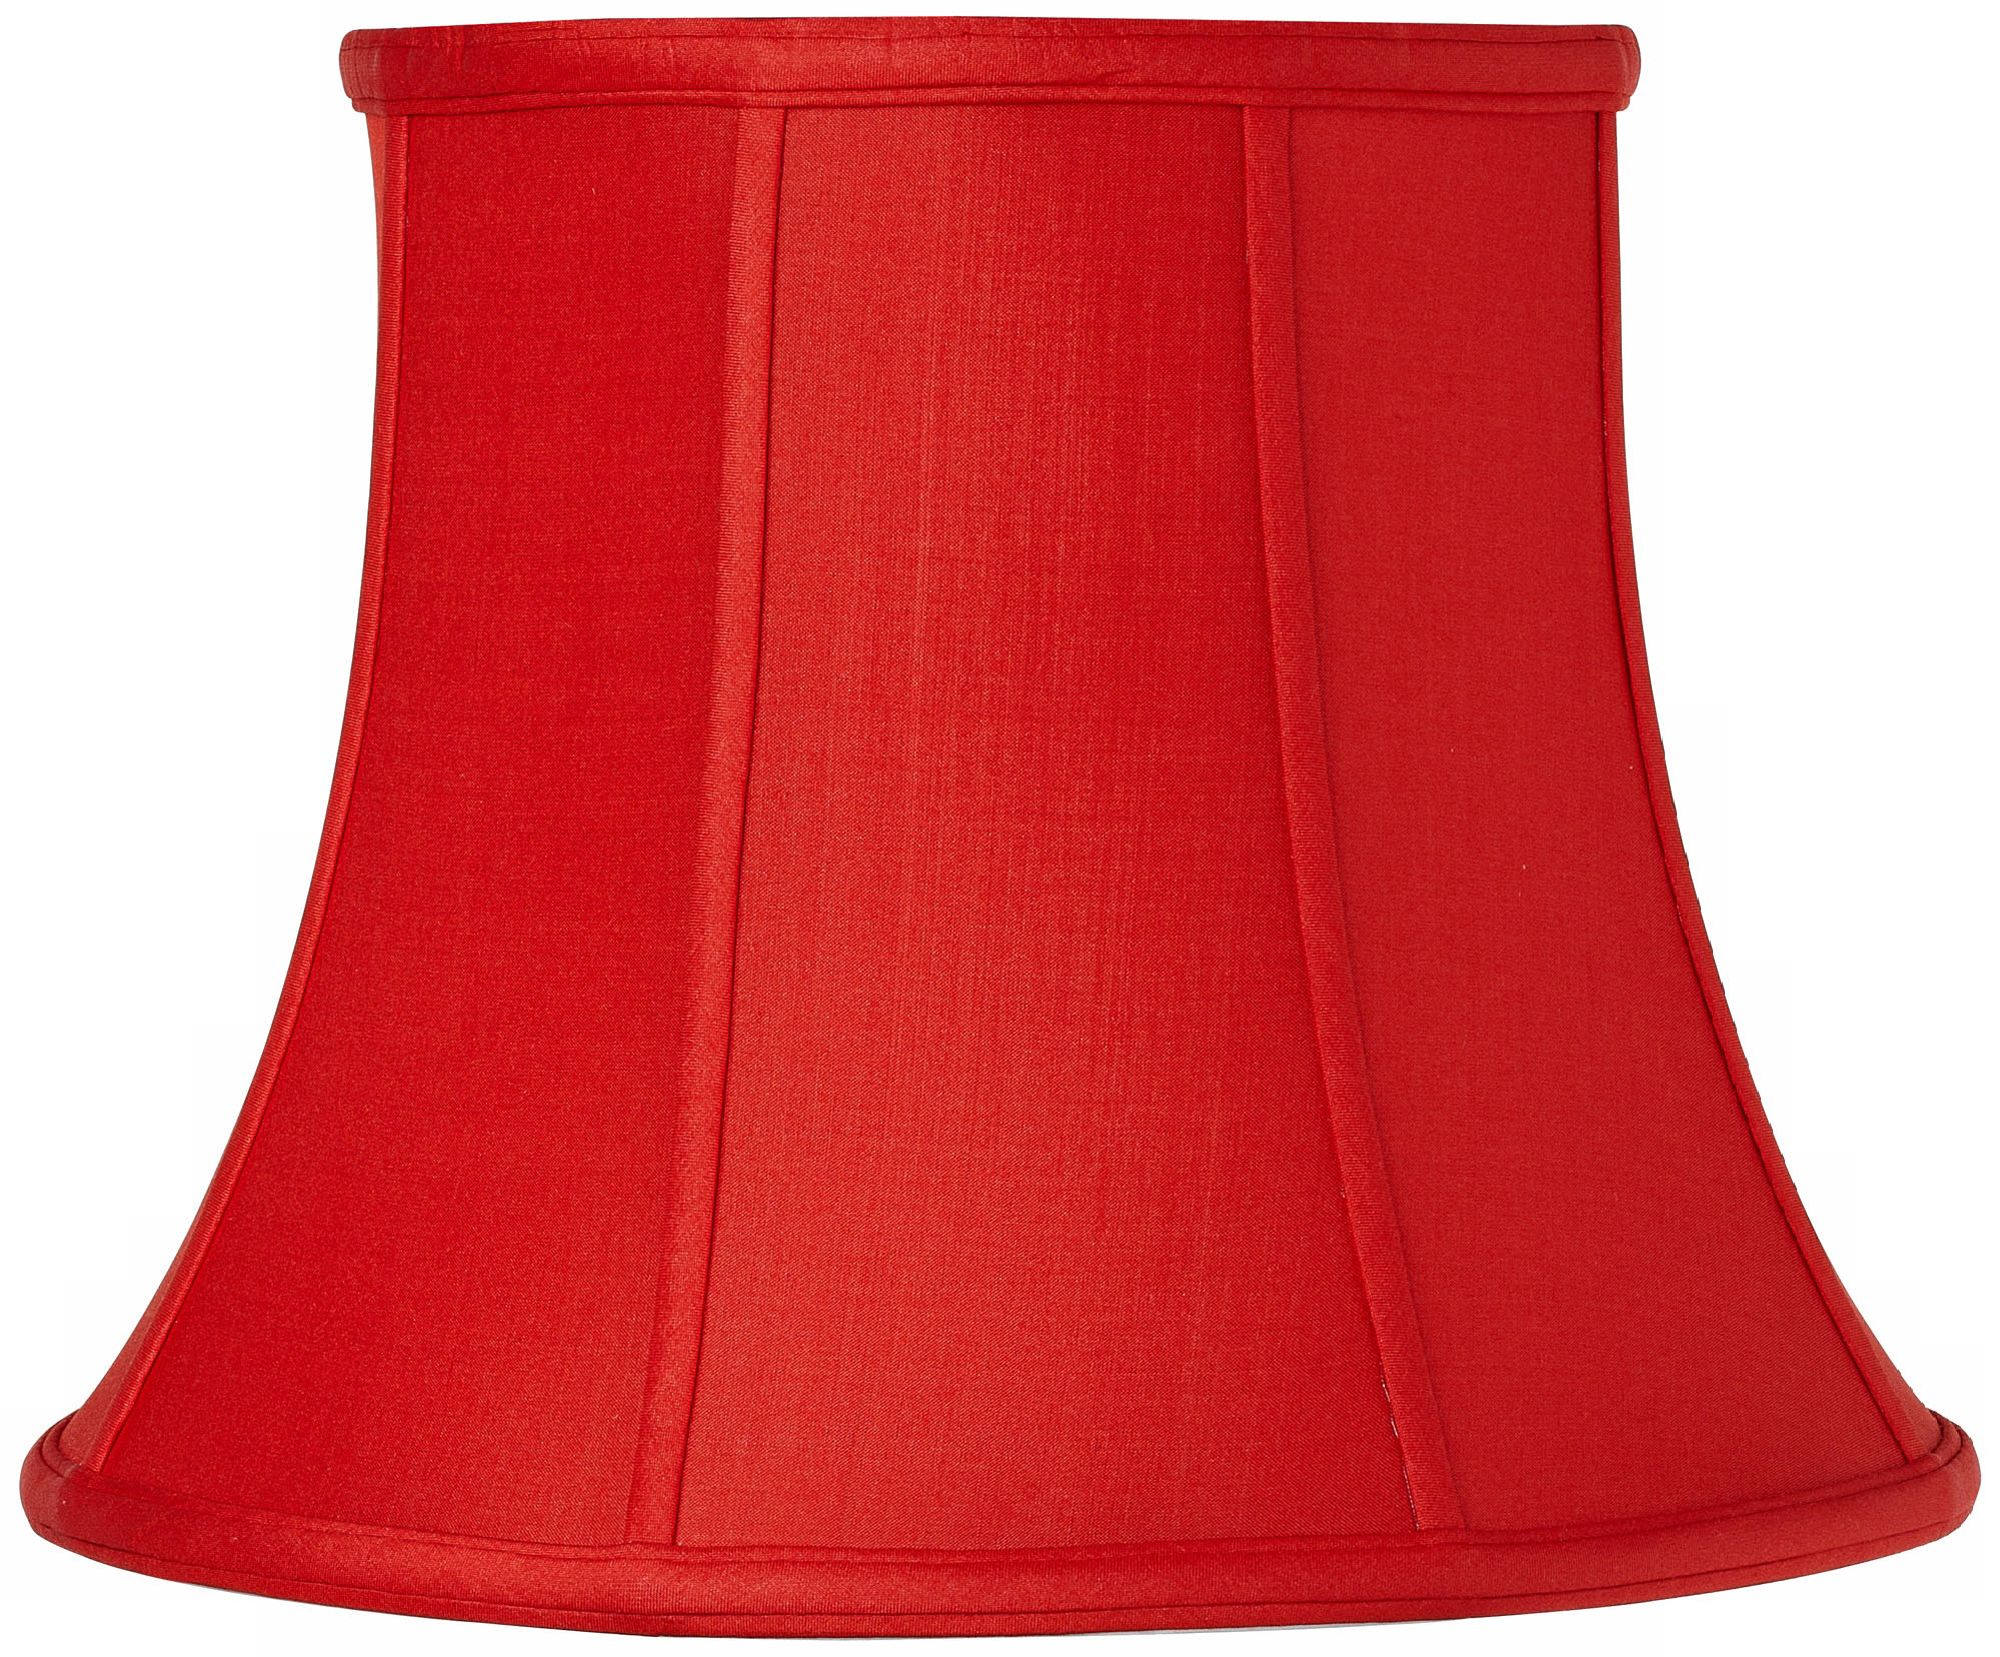 Red Silk Modified Bell Shade 9x14x11 (Spider)